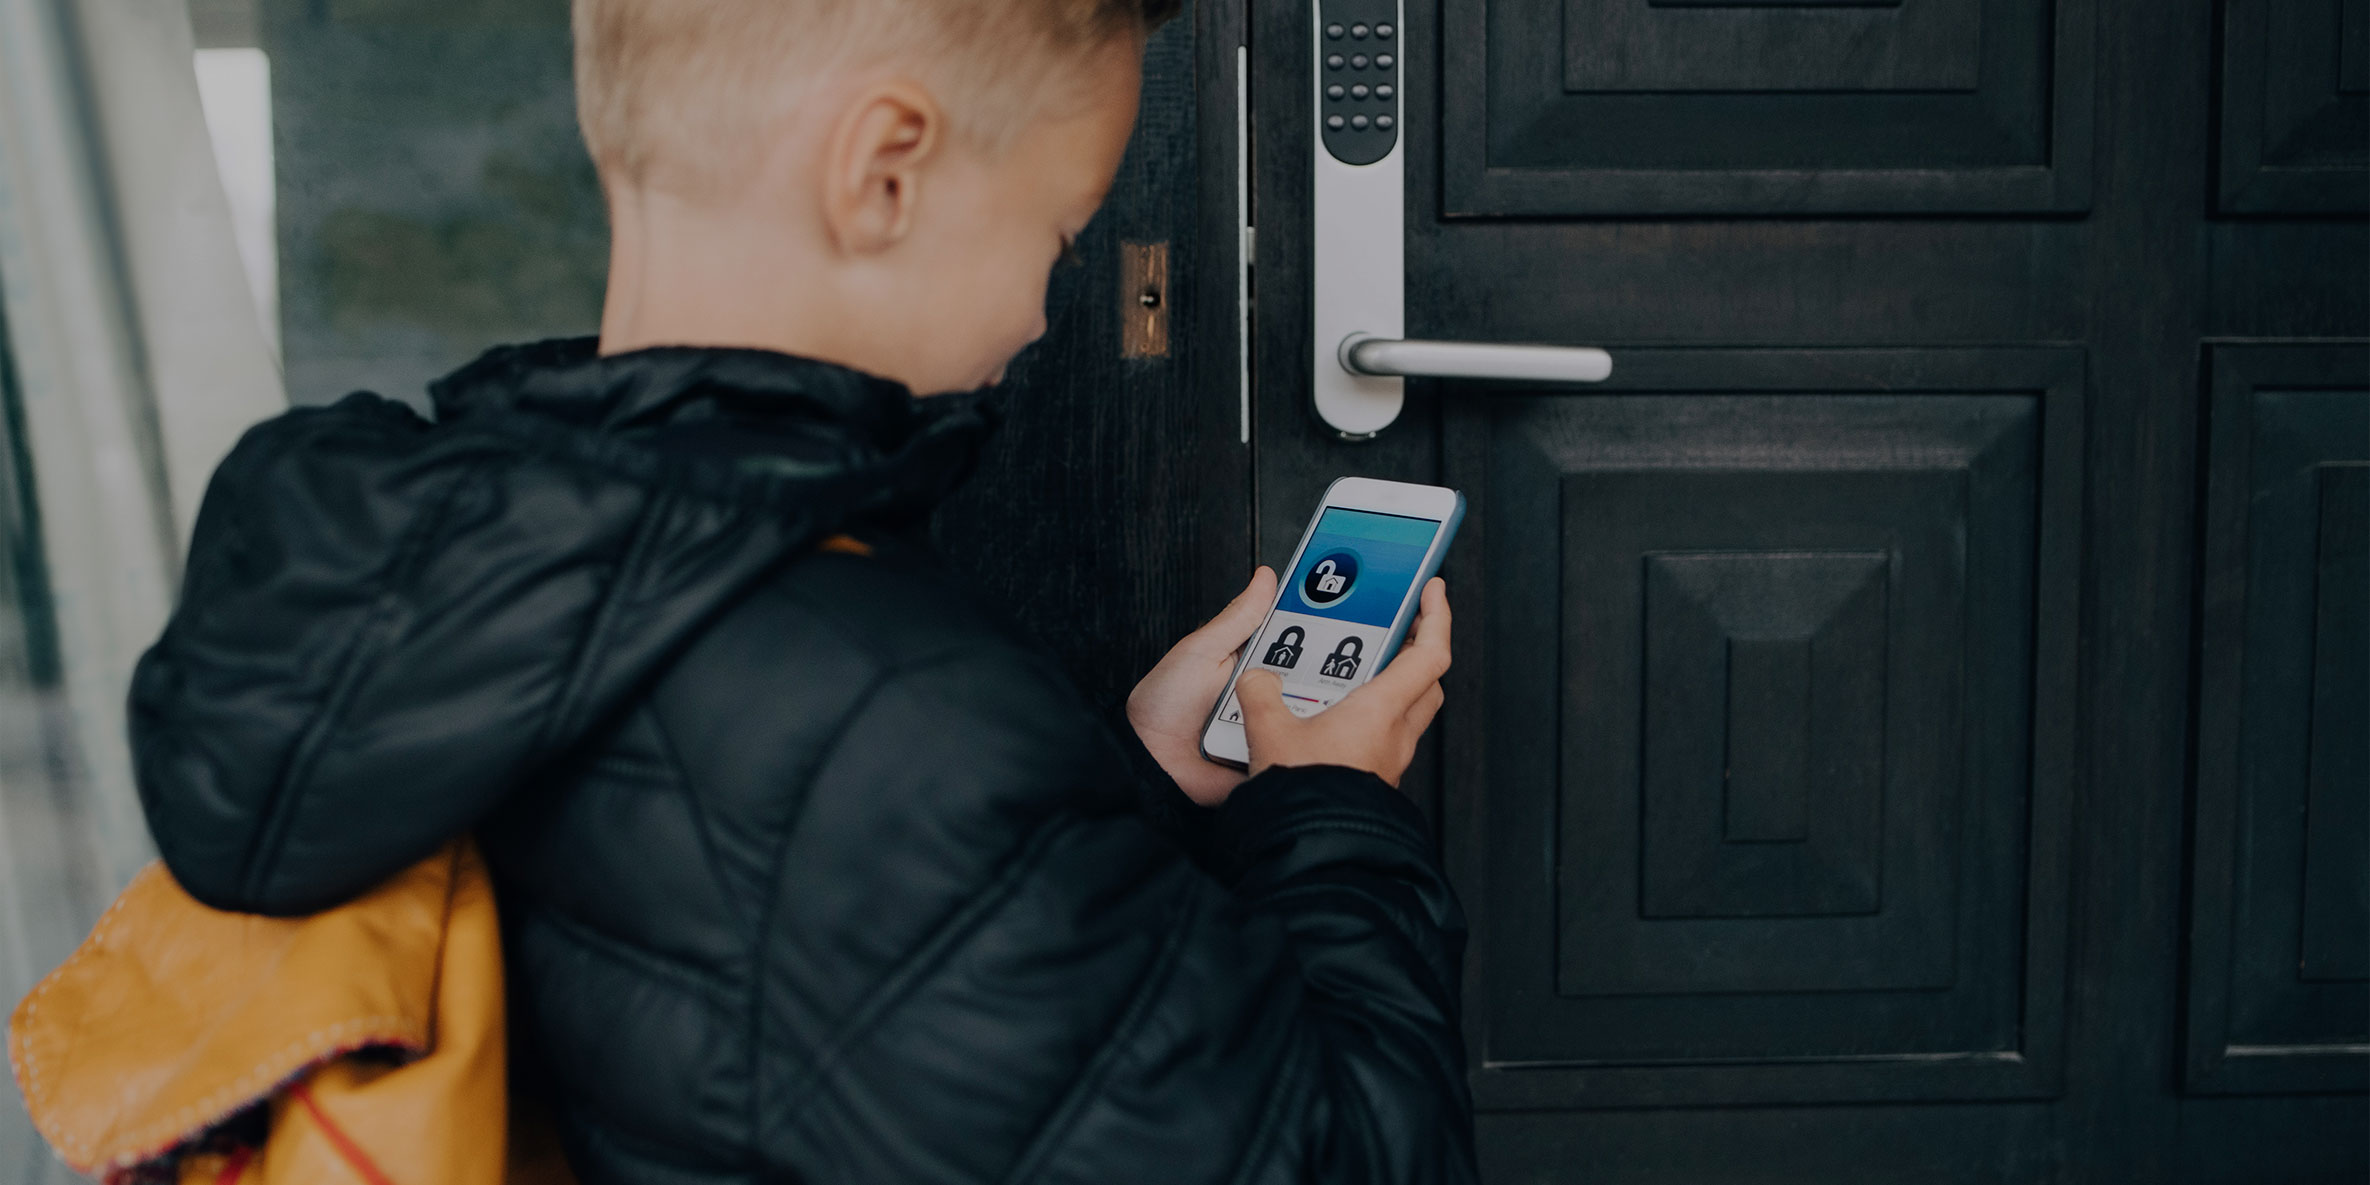 Convenience, Security and Connectivity: 3 Benefits of Smart Locks